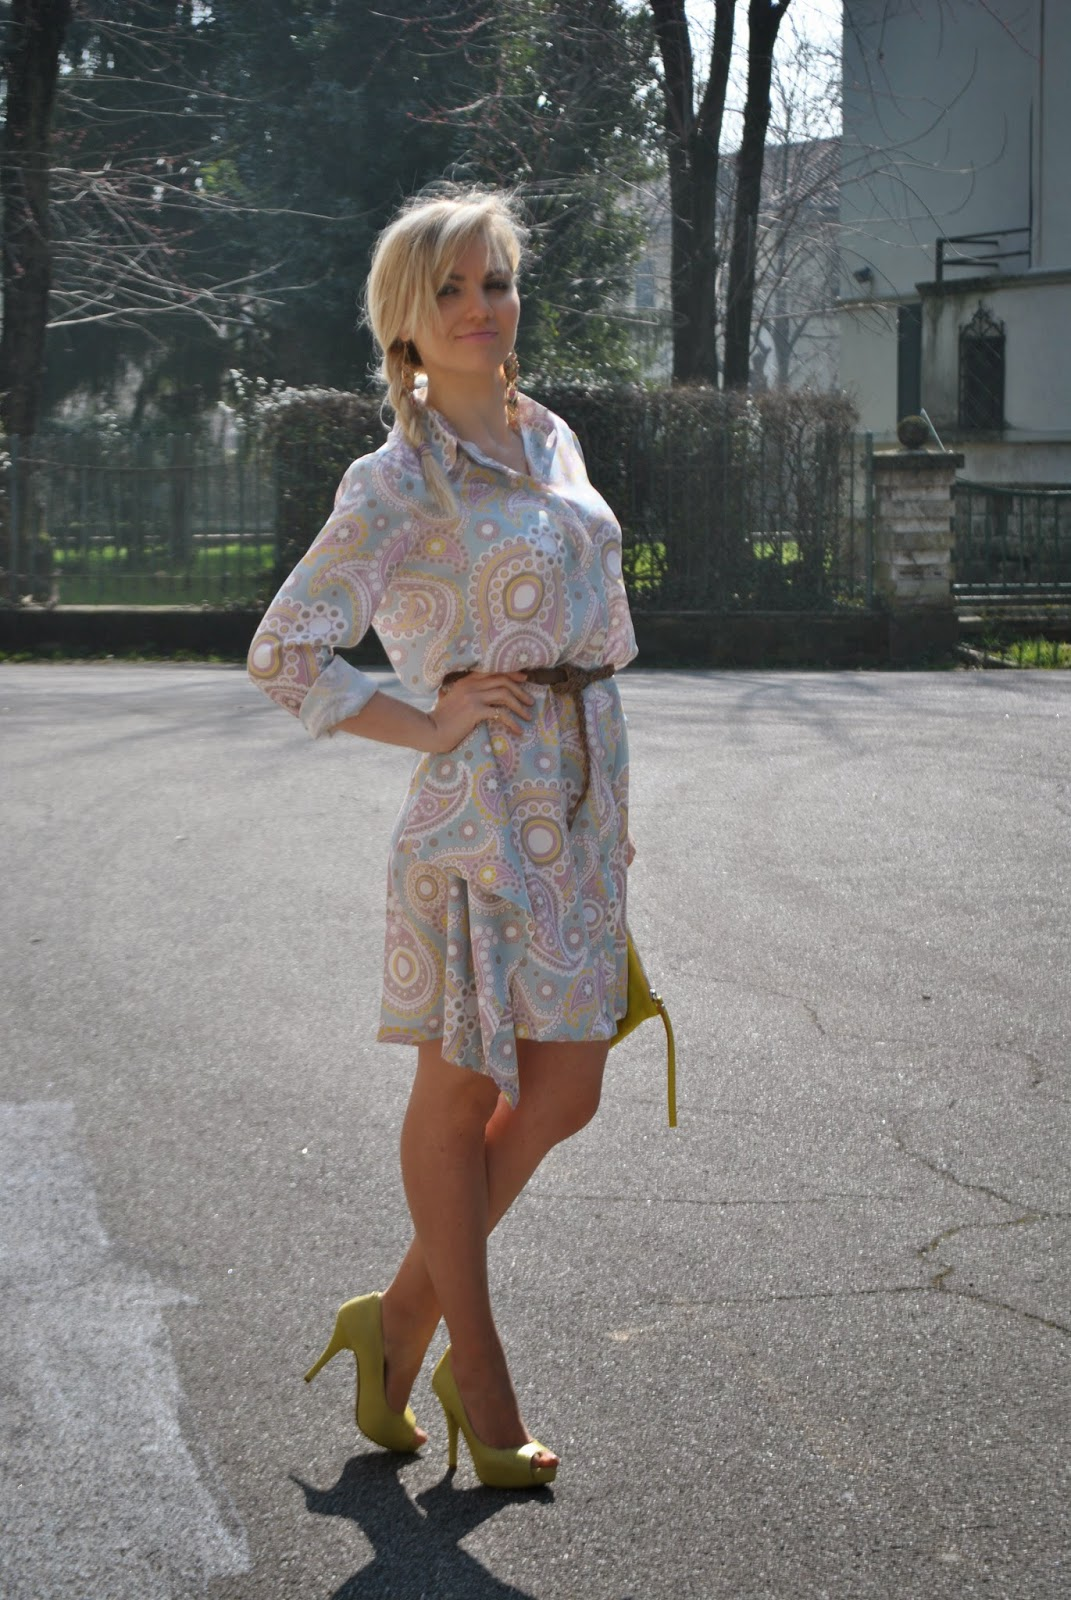 outfit primaverili outfit marzo 2015 outfit mariafelicia magno colorblock by felym mariafelicia magno fashion blogger blog di moda italiani blogger italiane di moda ragazze bionde fashion blogger bionde march outfits spring outfits fashion bloggers italy blonde hair blonde girls